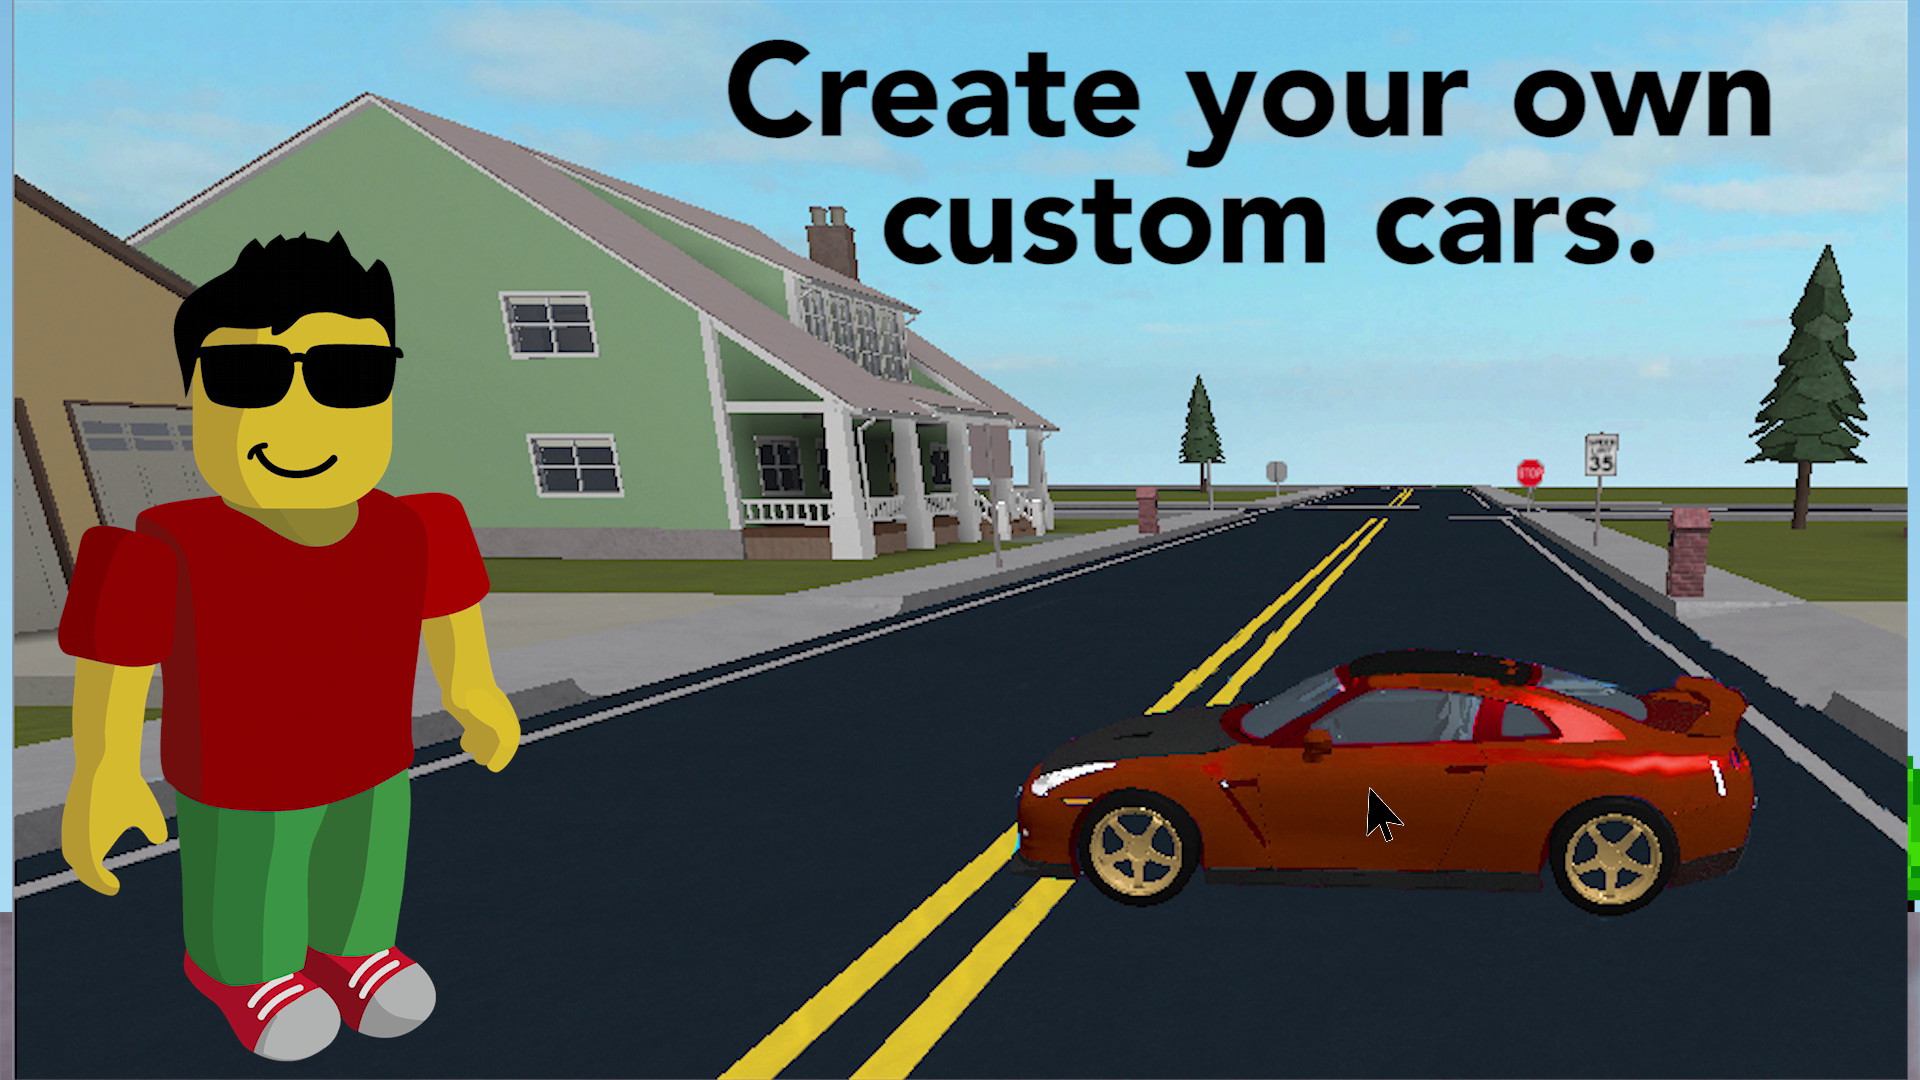 Let's Learn About Roblox with THE ULTIMATE ROBLOX BOOK: AN UNOFFICIAL GUIDE